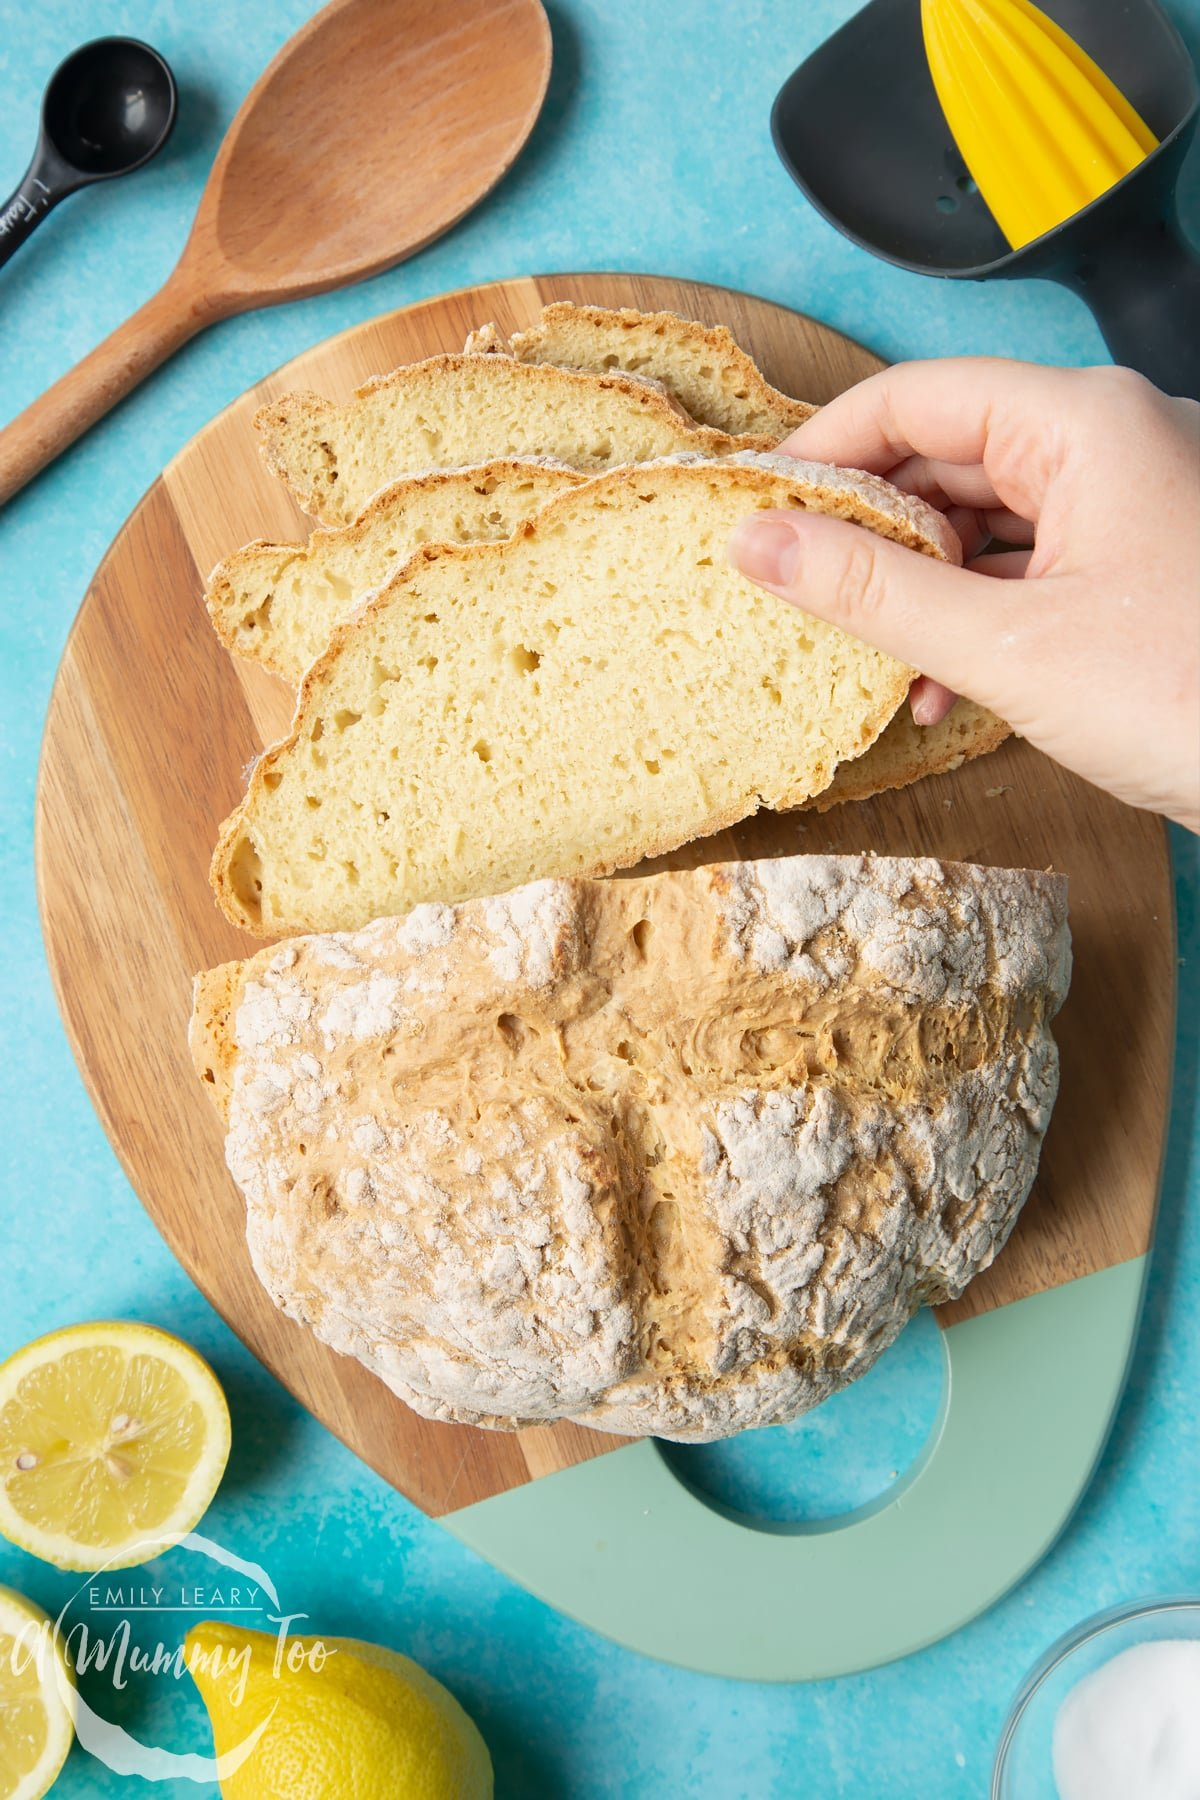 Vegan soda bread on a wooden board. Some of the bread has been cut into slices. A hand is taking a slice.